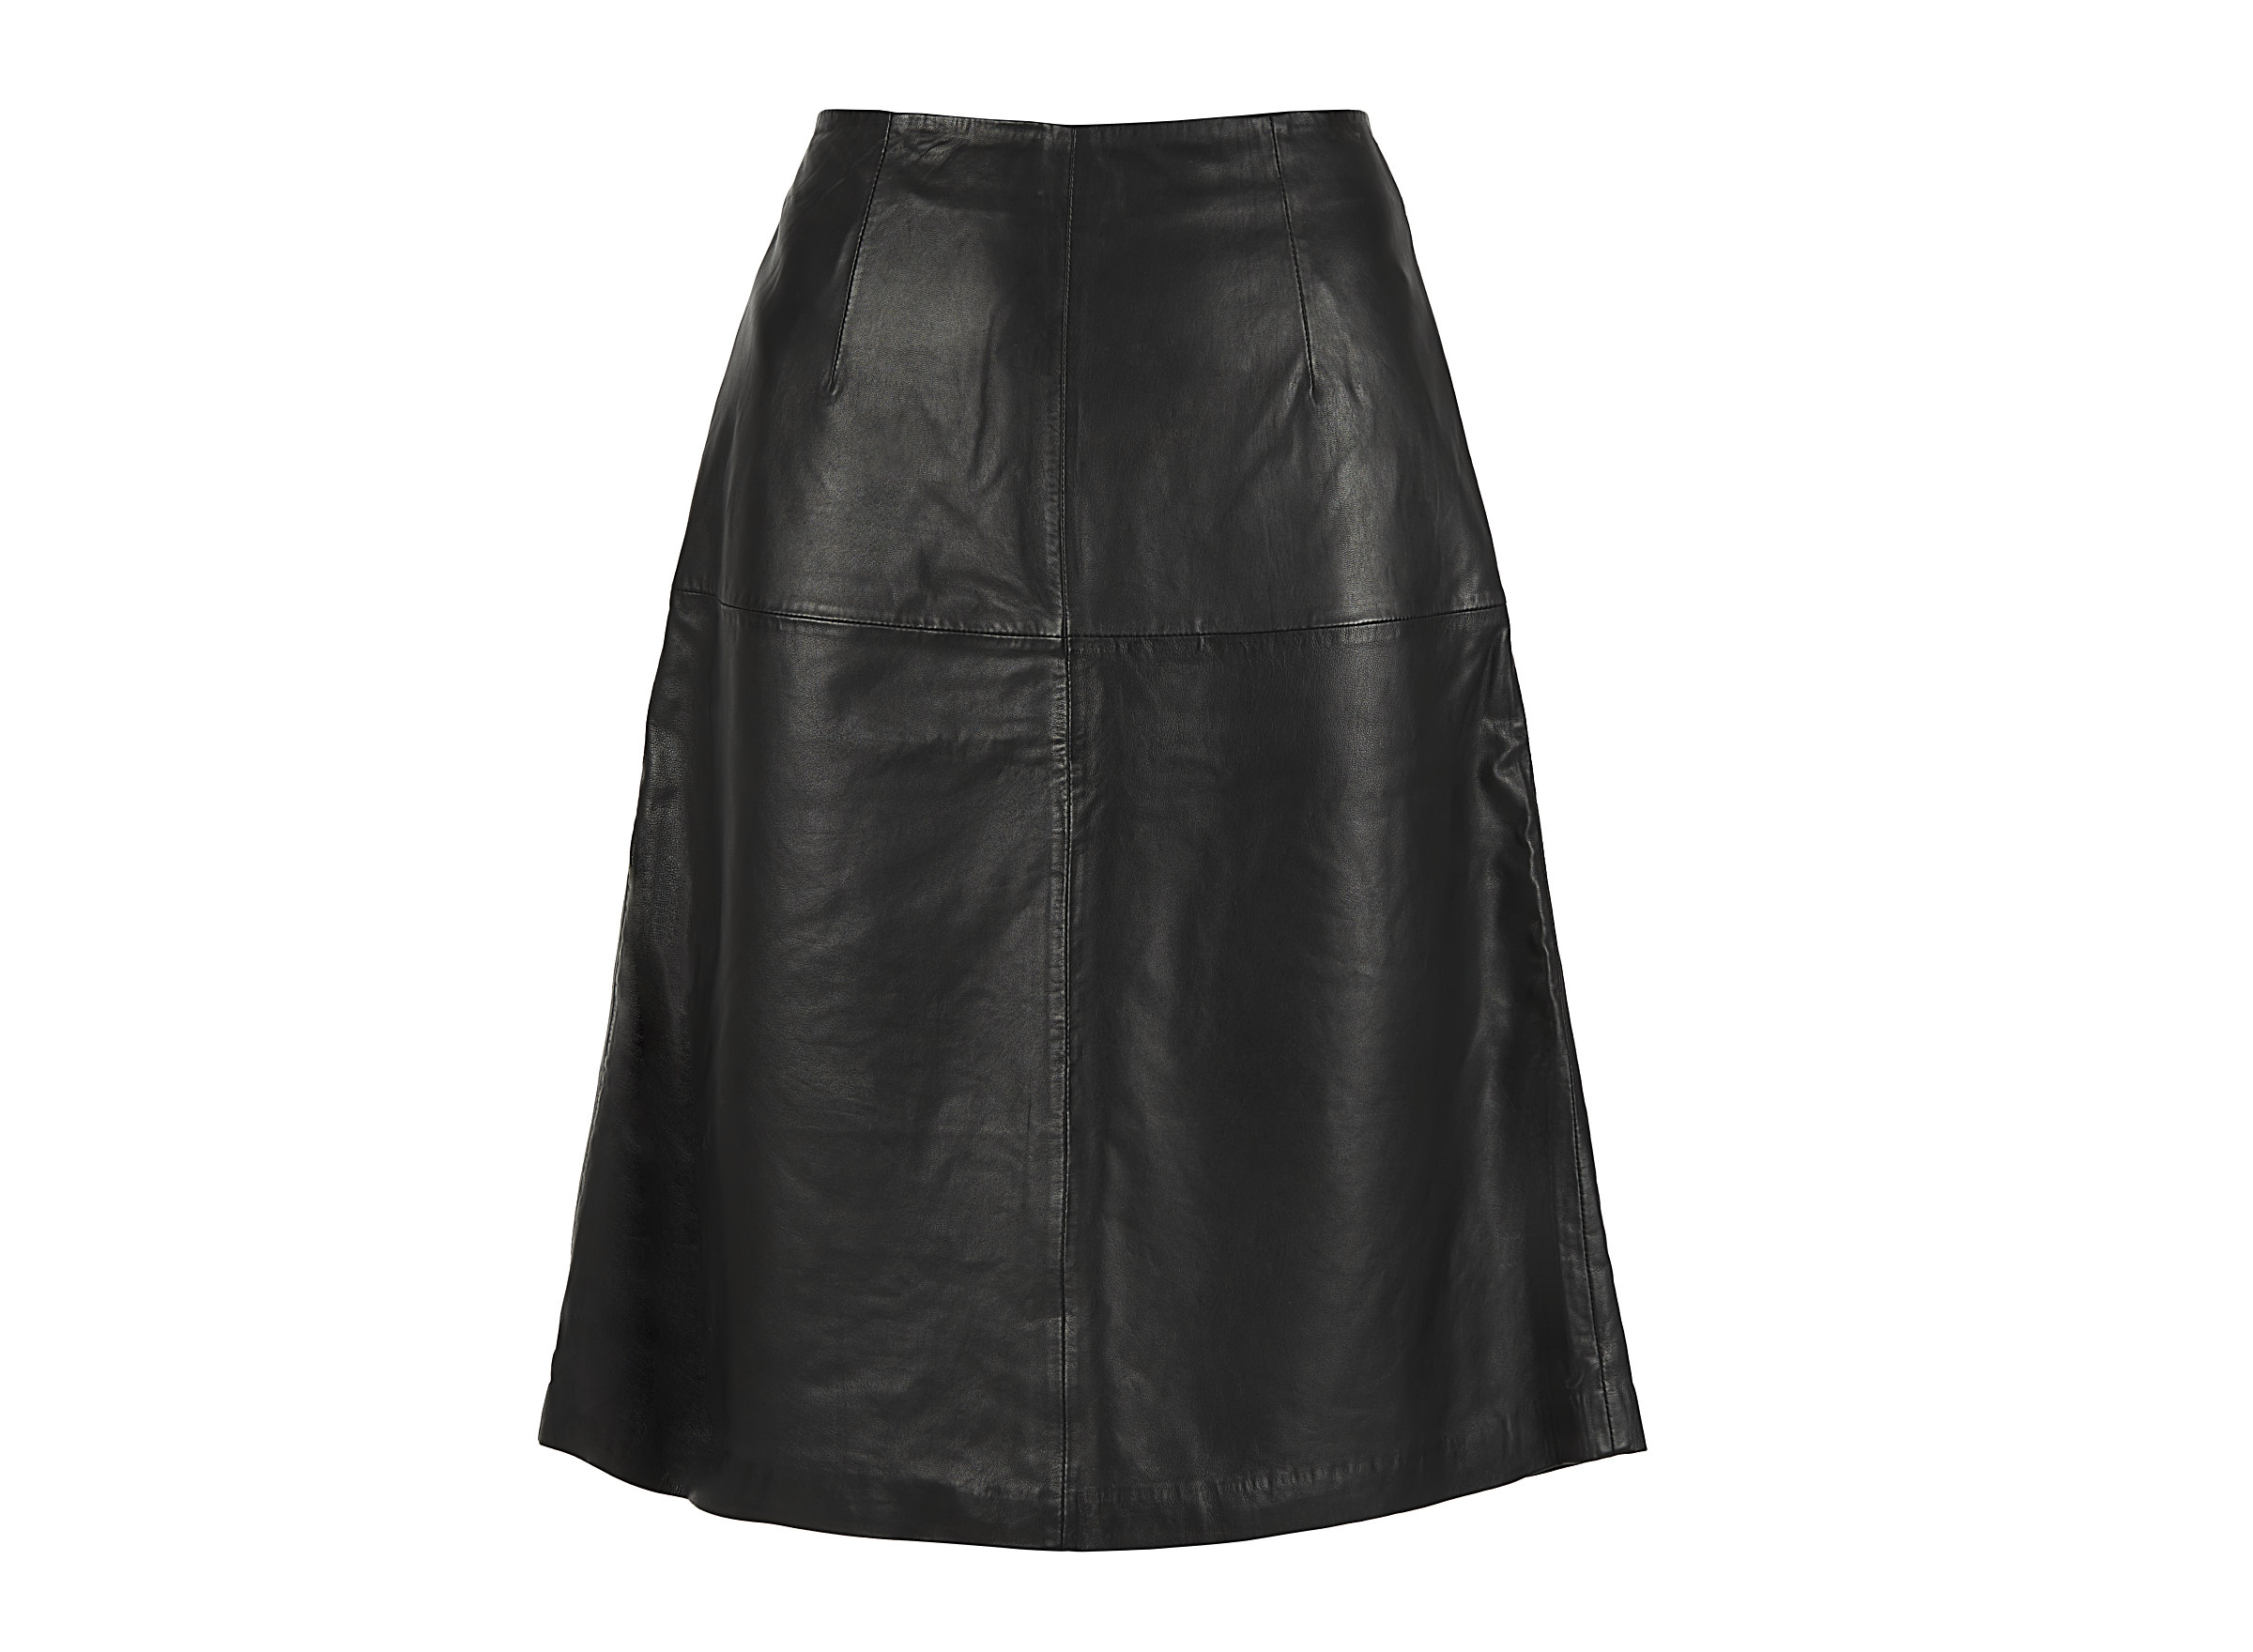 Chabo Bags - Leather Skirt Cicely - Black 40